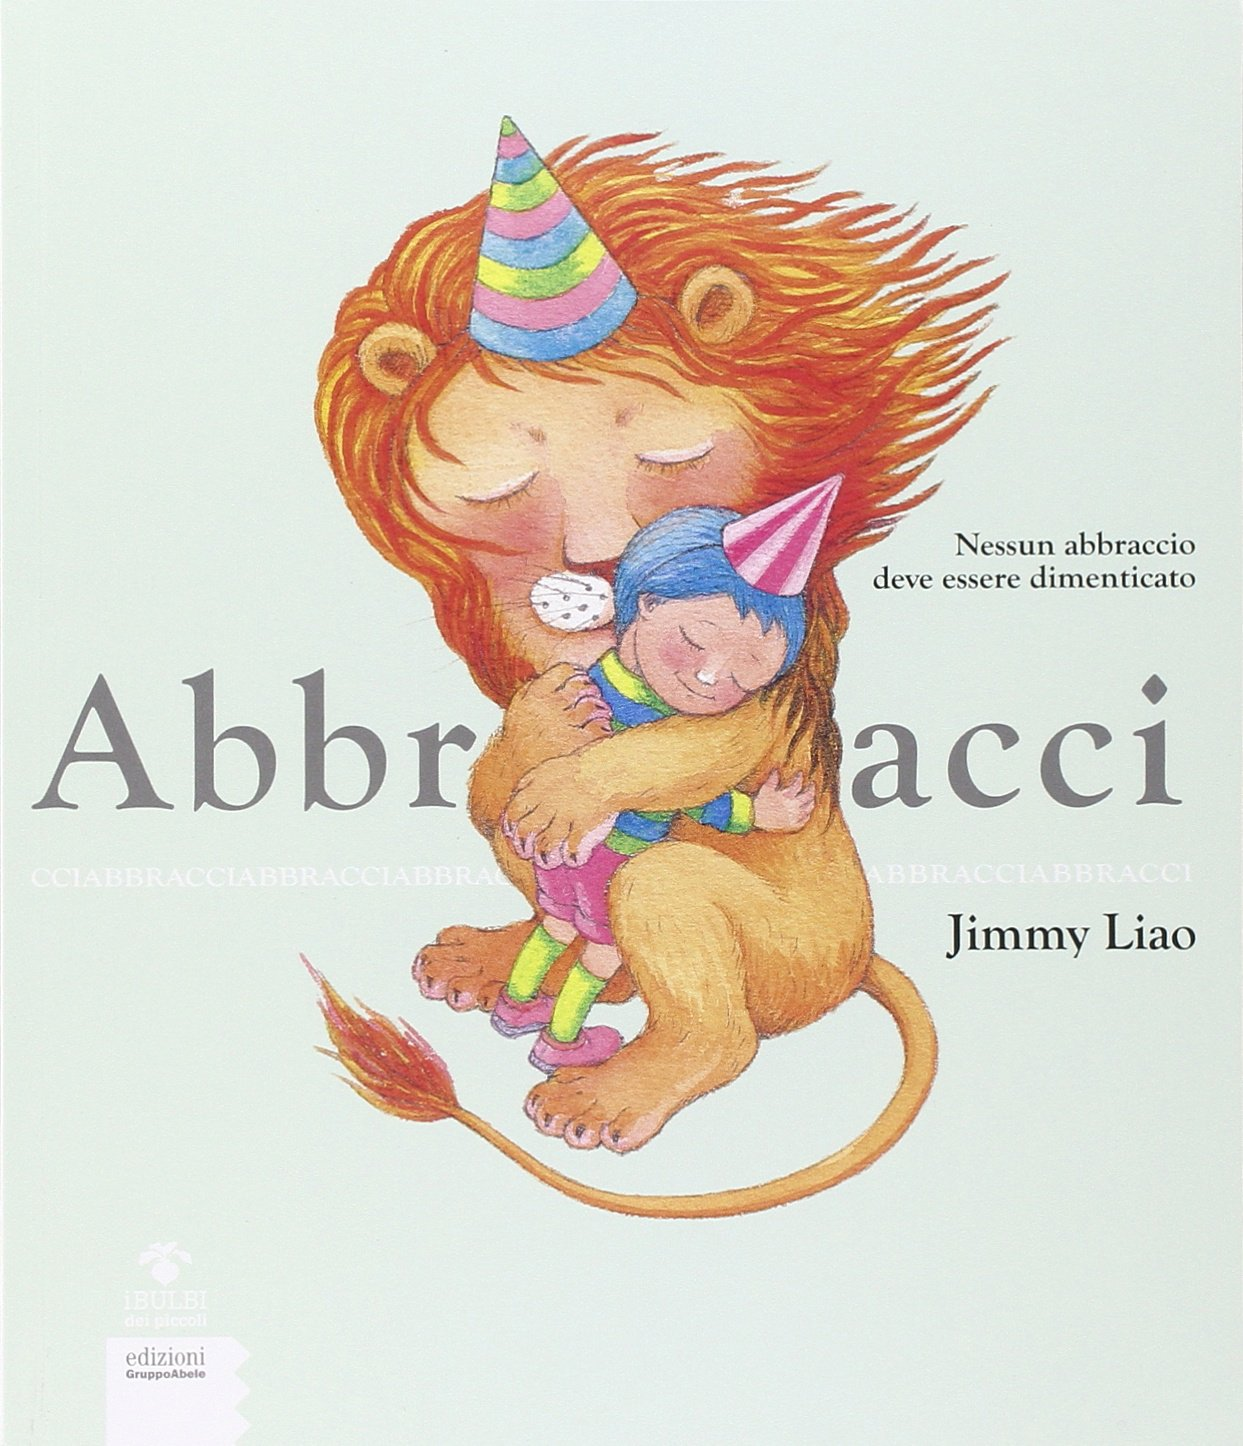 Amazon.it: Abbracci - Liao, Jimmy, Torchio, S. - Libri